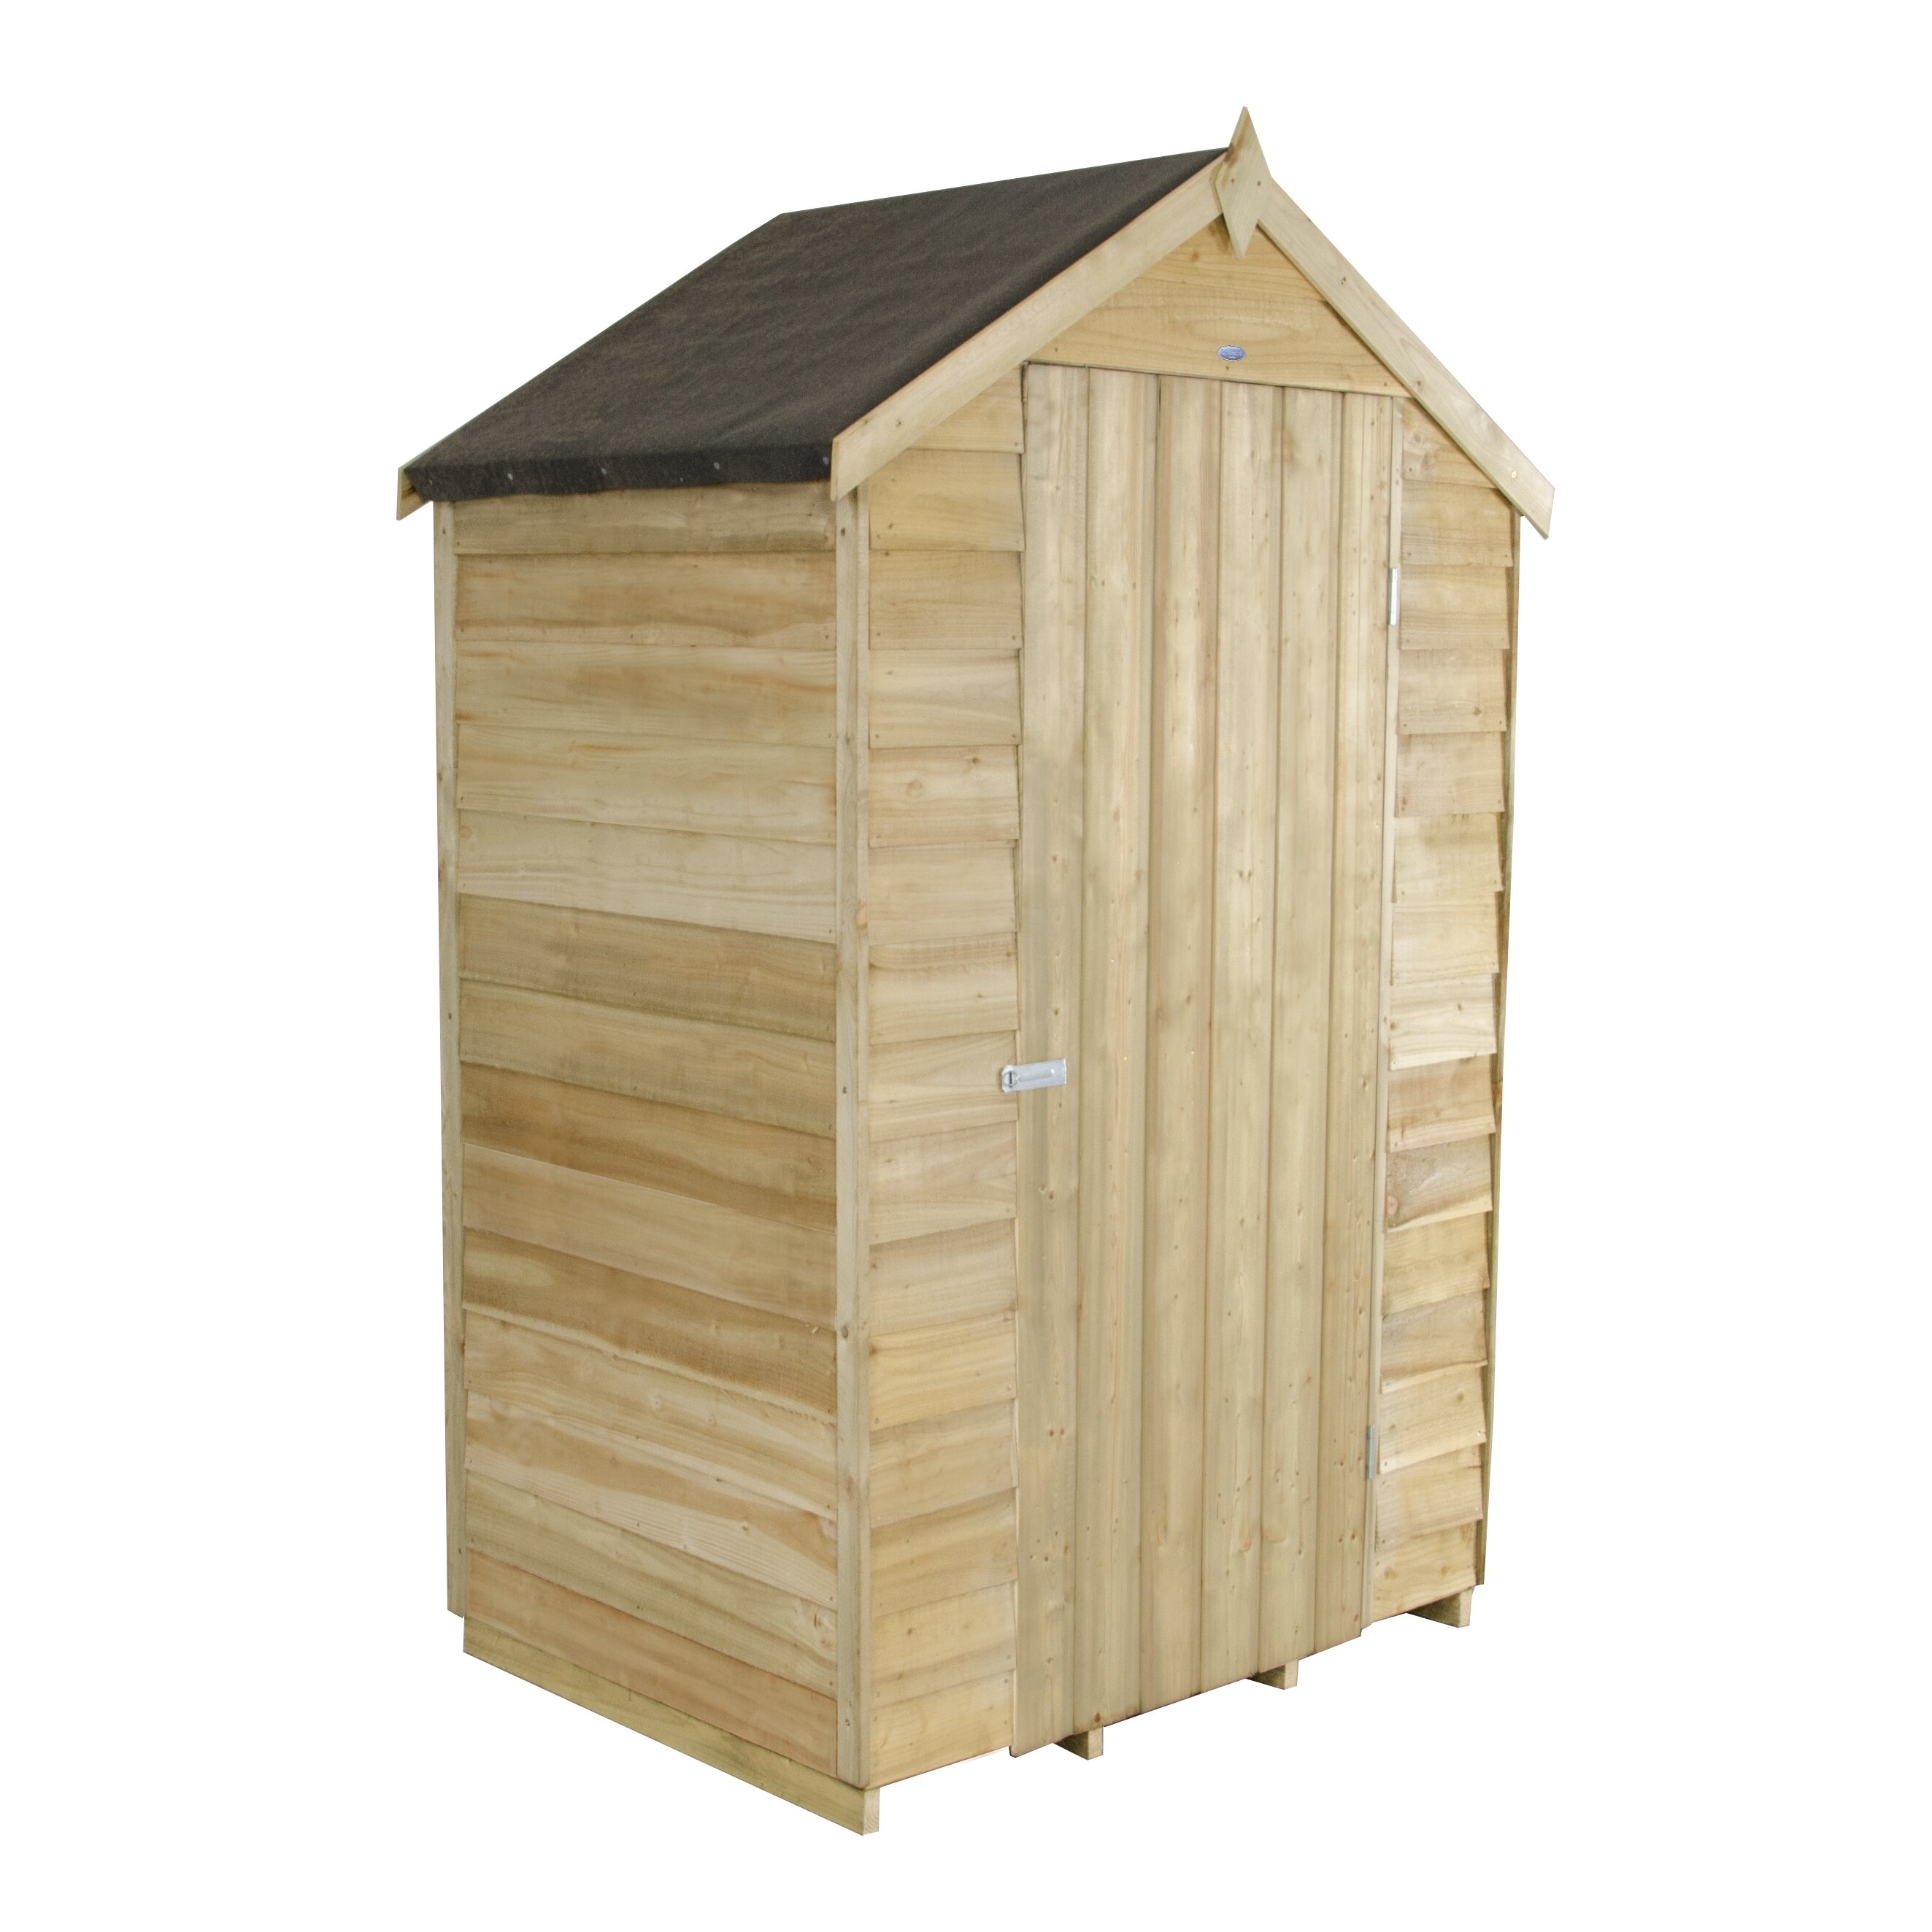 forest garden 4 x 3 wooden storage shed wayfair uk ForGarden Shed 4 X 3